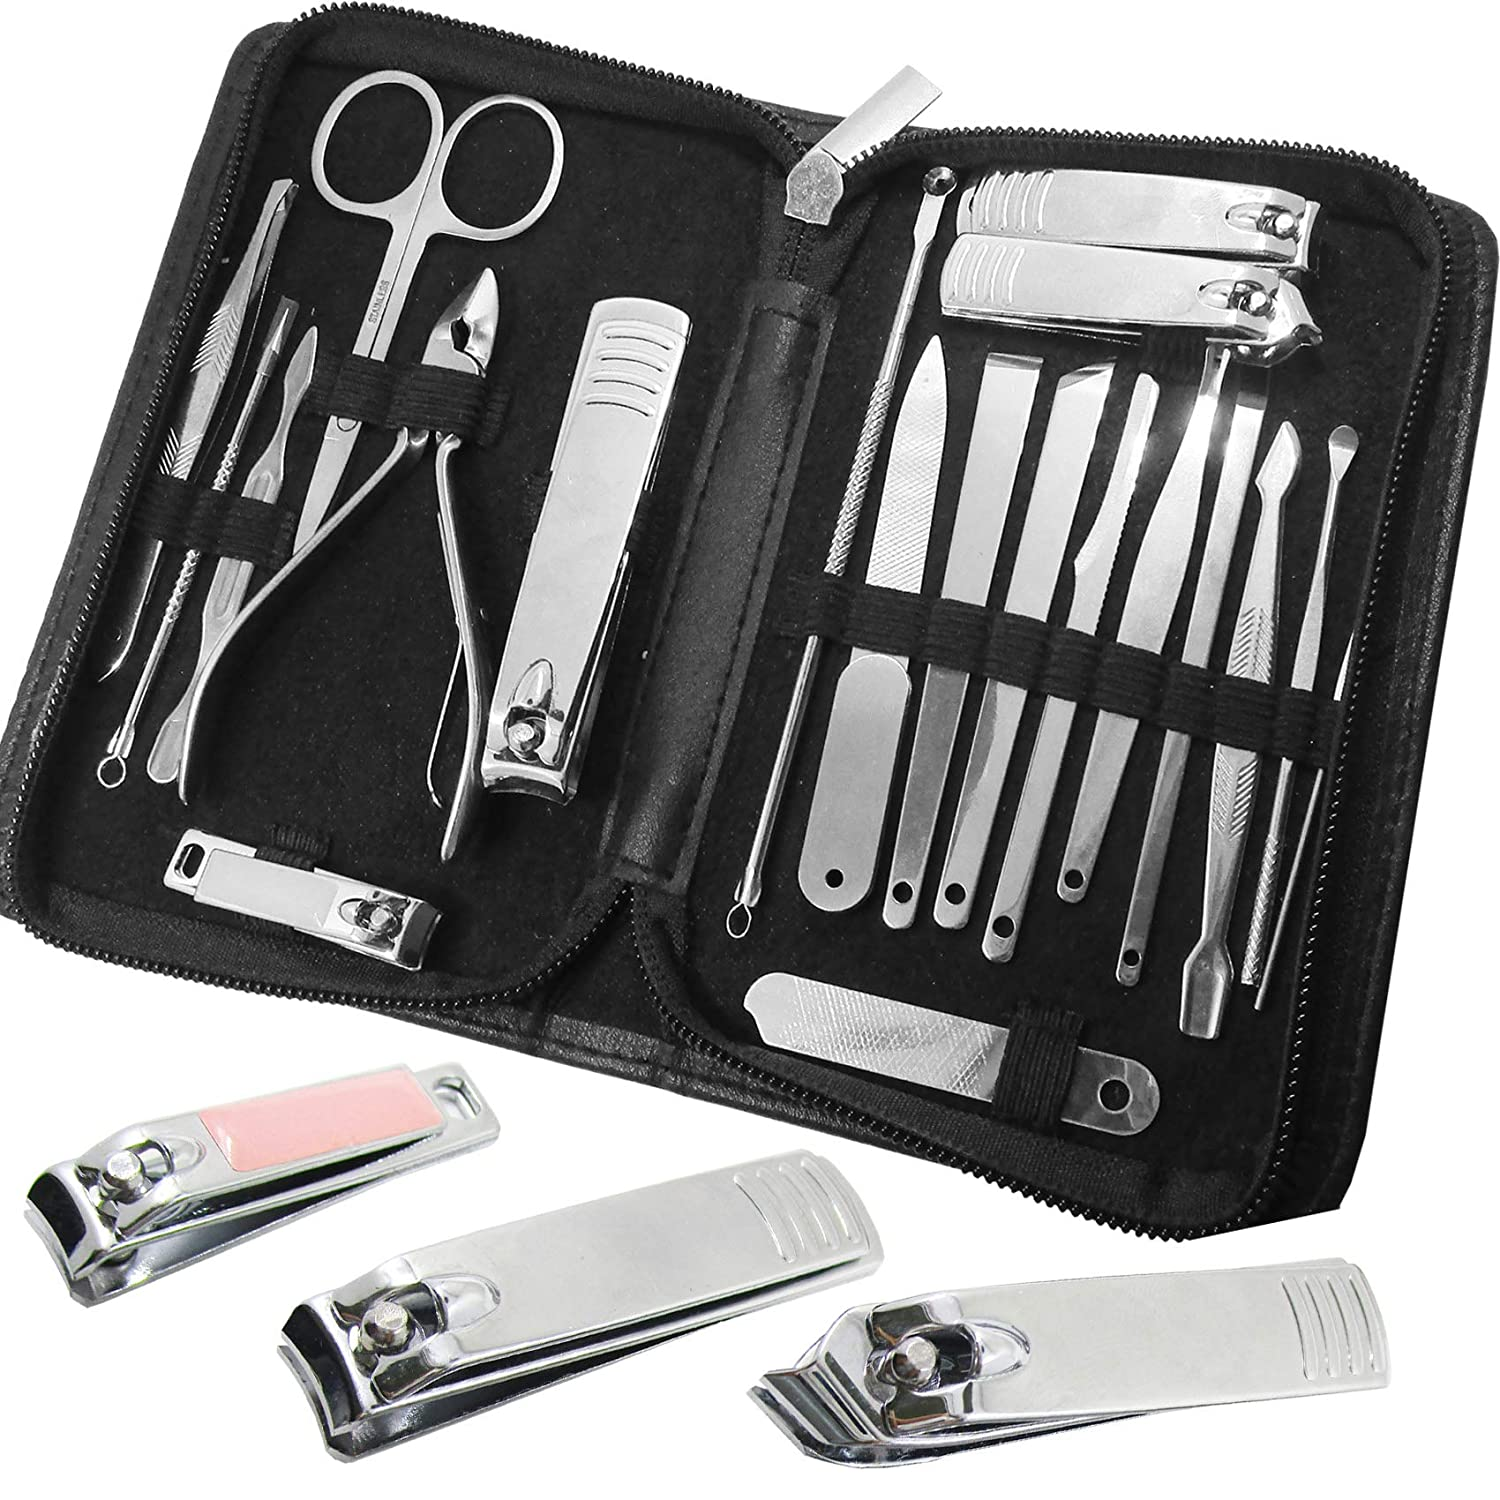 20 in 1 Manicure Set Nail Clippers Pedicure Kit Stainless Steel Manicure Kits, Professional Grooming Kits, Nail Care Tools with Black Travel Case for Men and Women (20PCS)